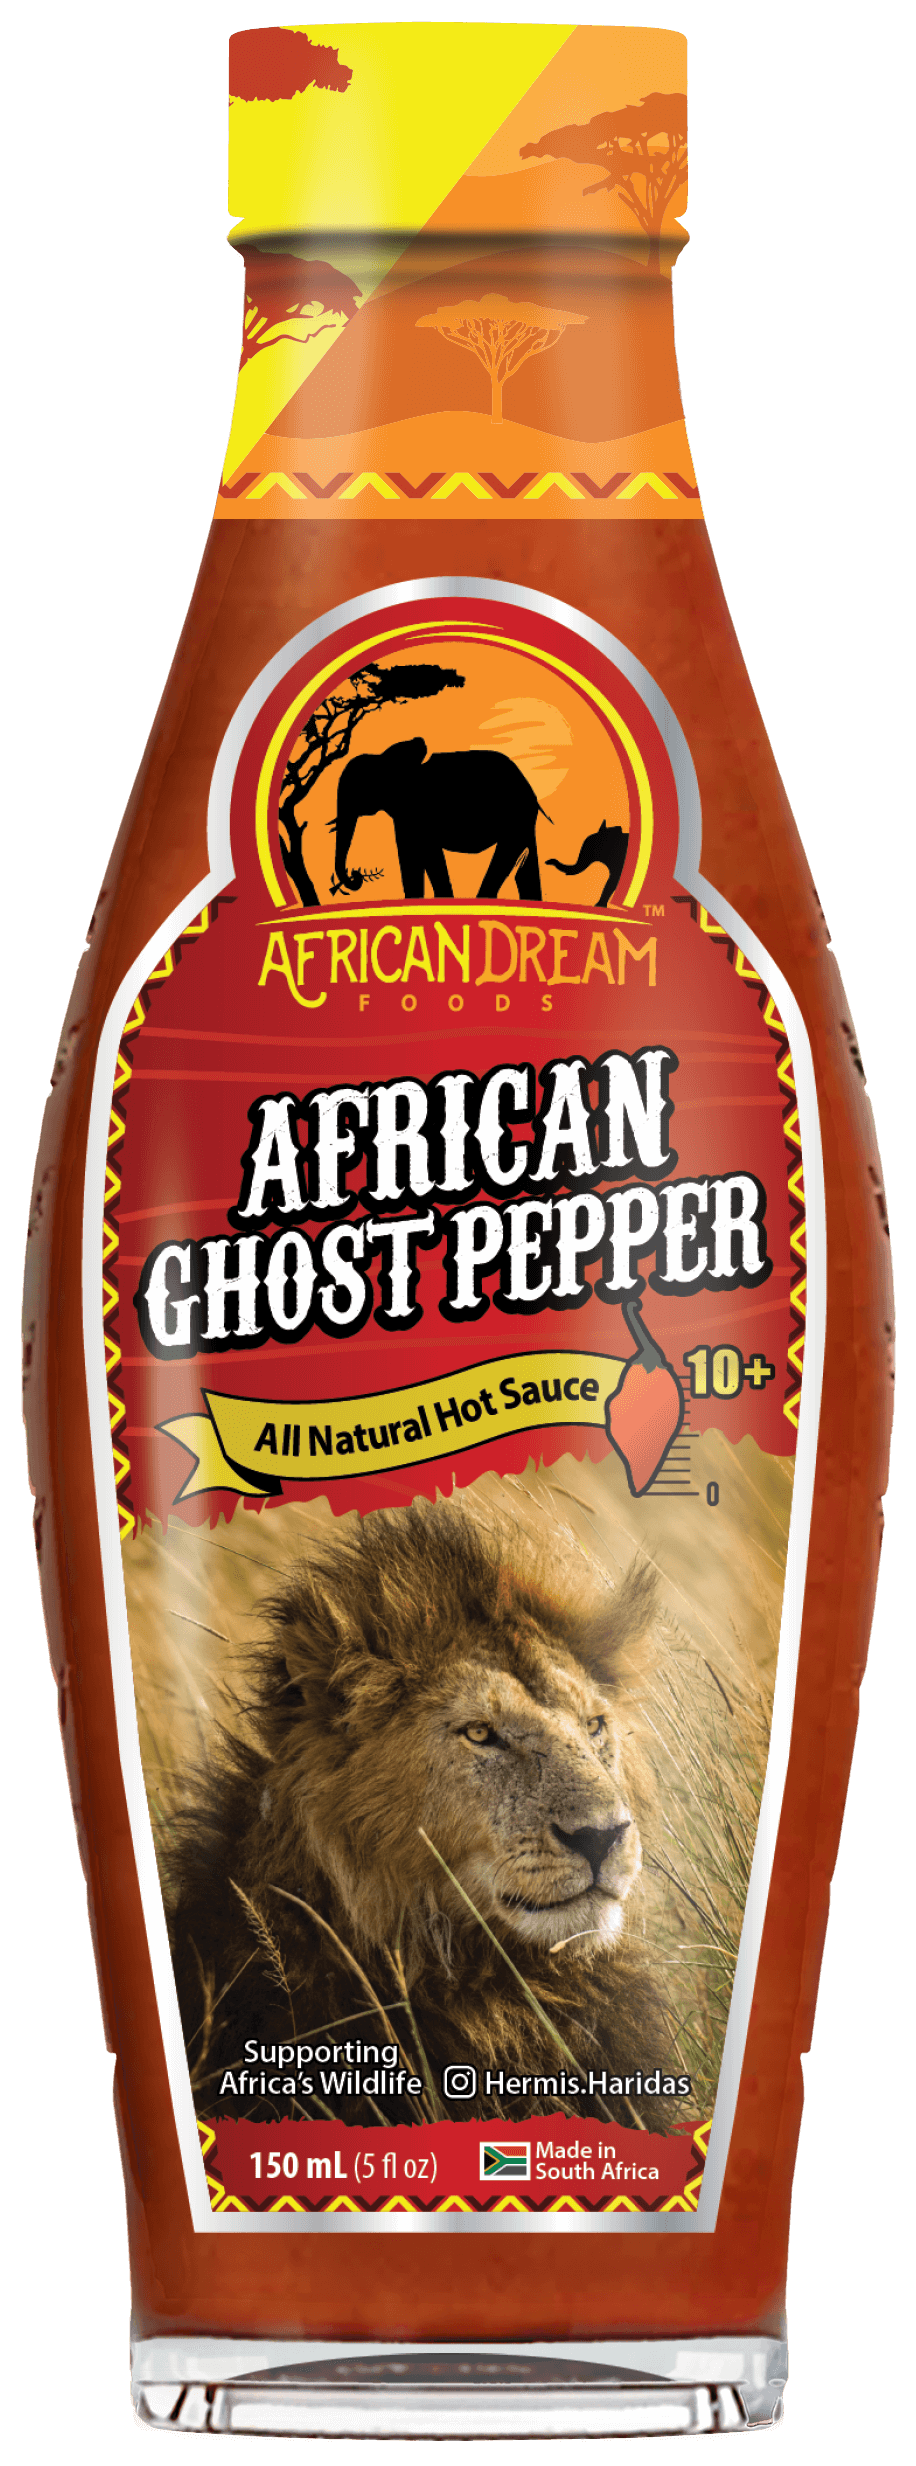 African Ghost Pepper Hot sauce